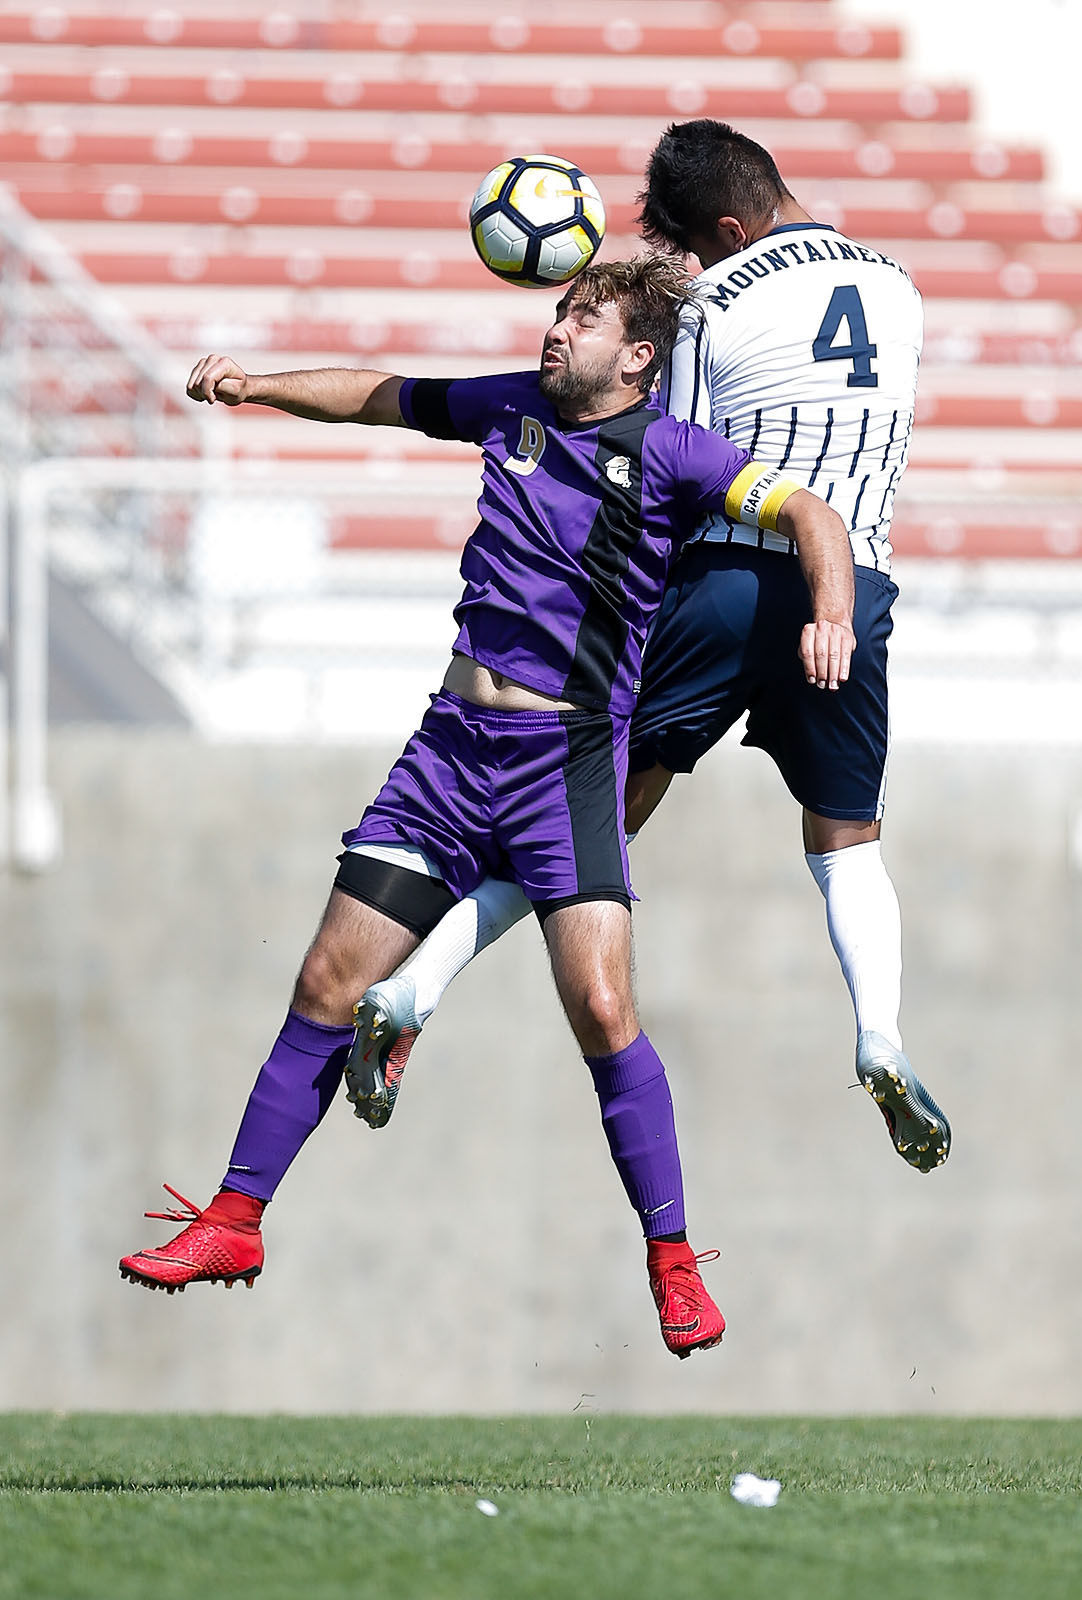 Carroll s Jose Porras heads the ball near midfield against Eastern Oregon  Sunday at Nelson Stadium. The Saints lost 4-0 to the Mountaineers. 1752f79d9b8